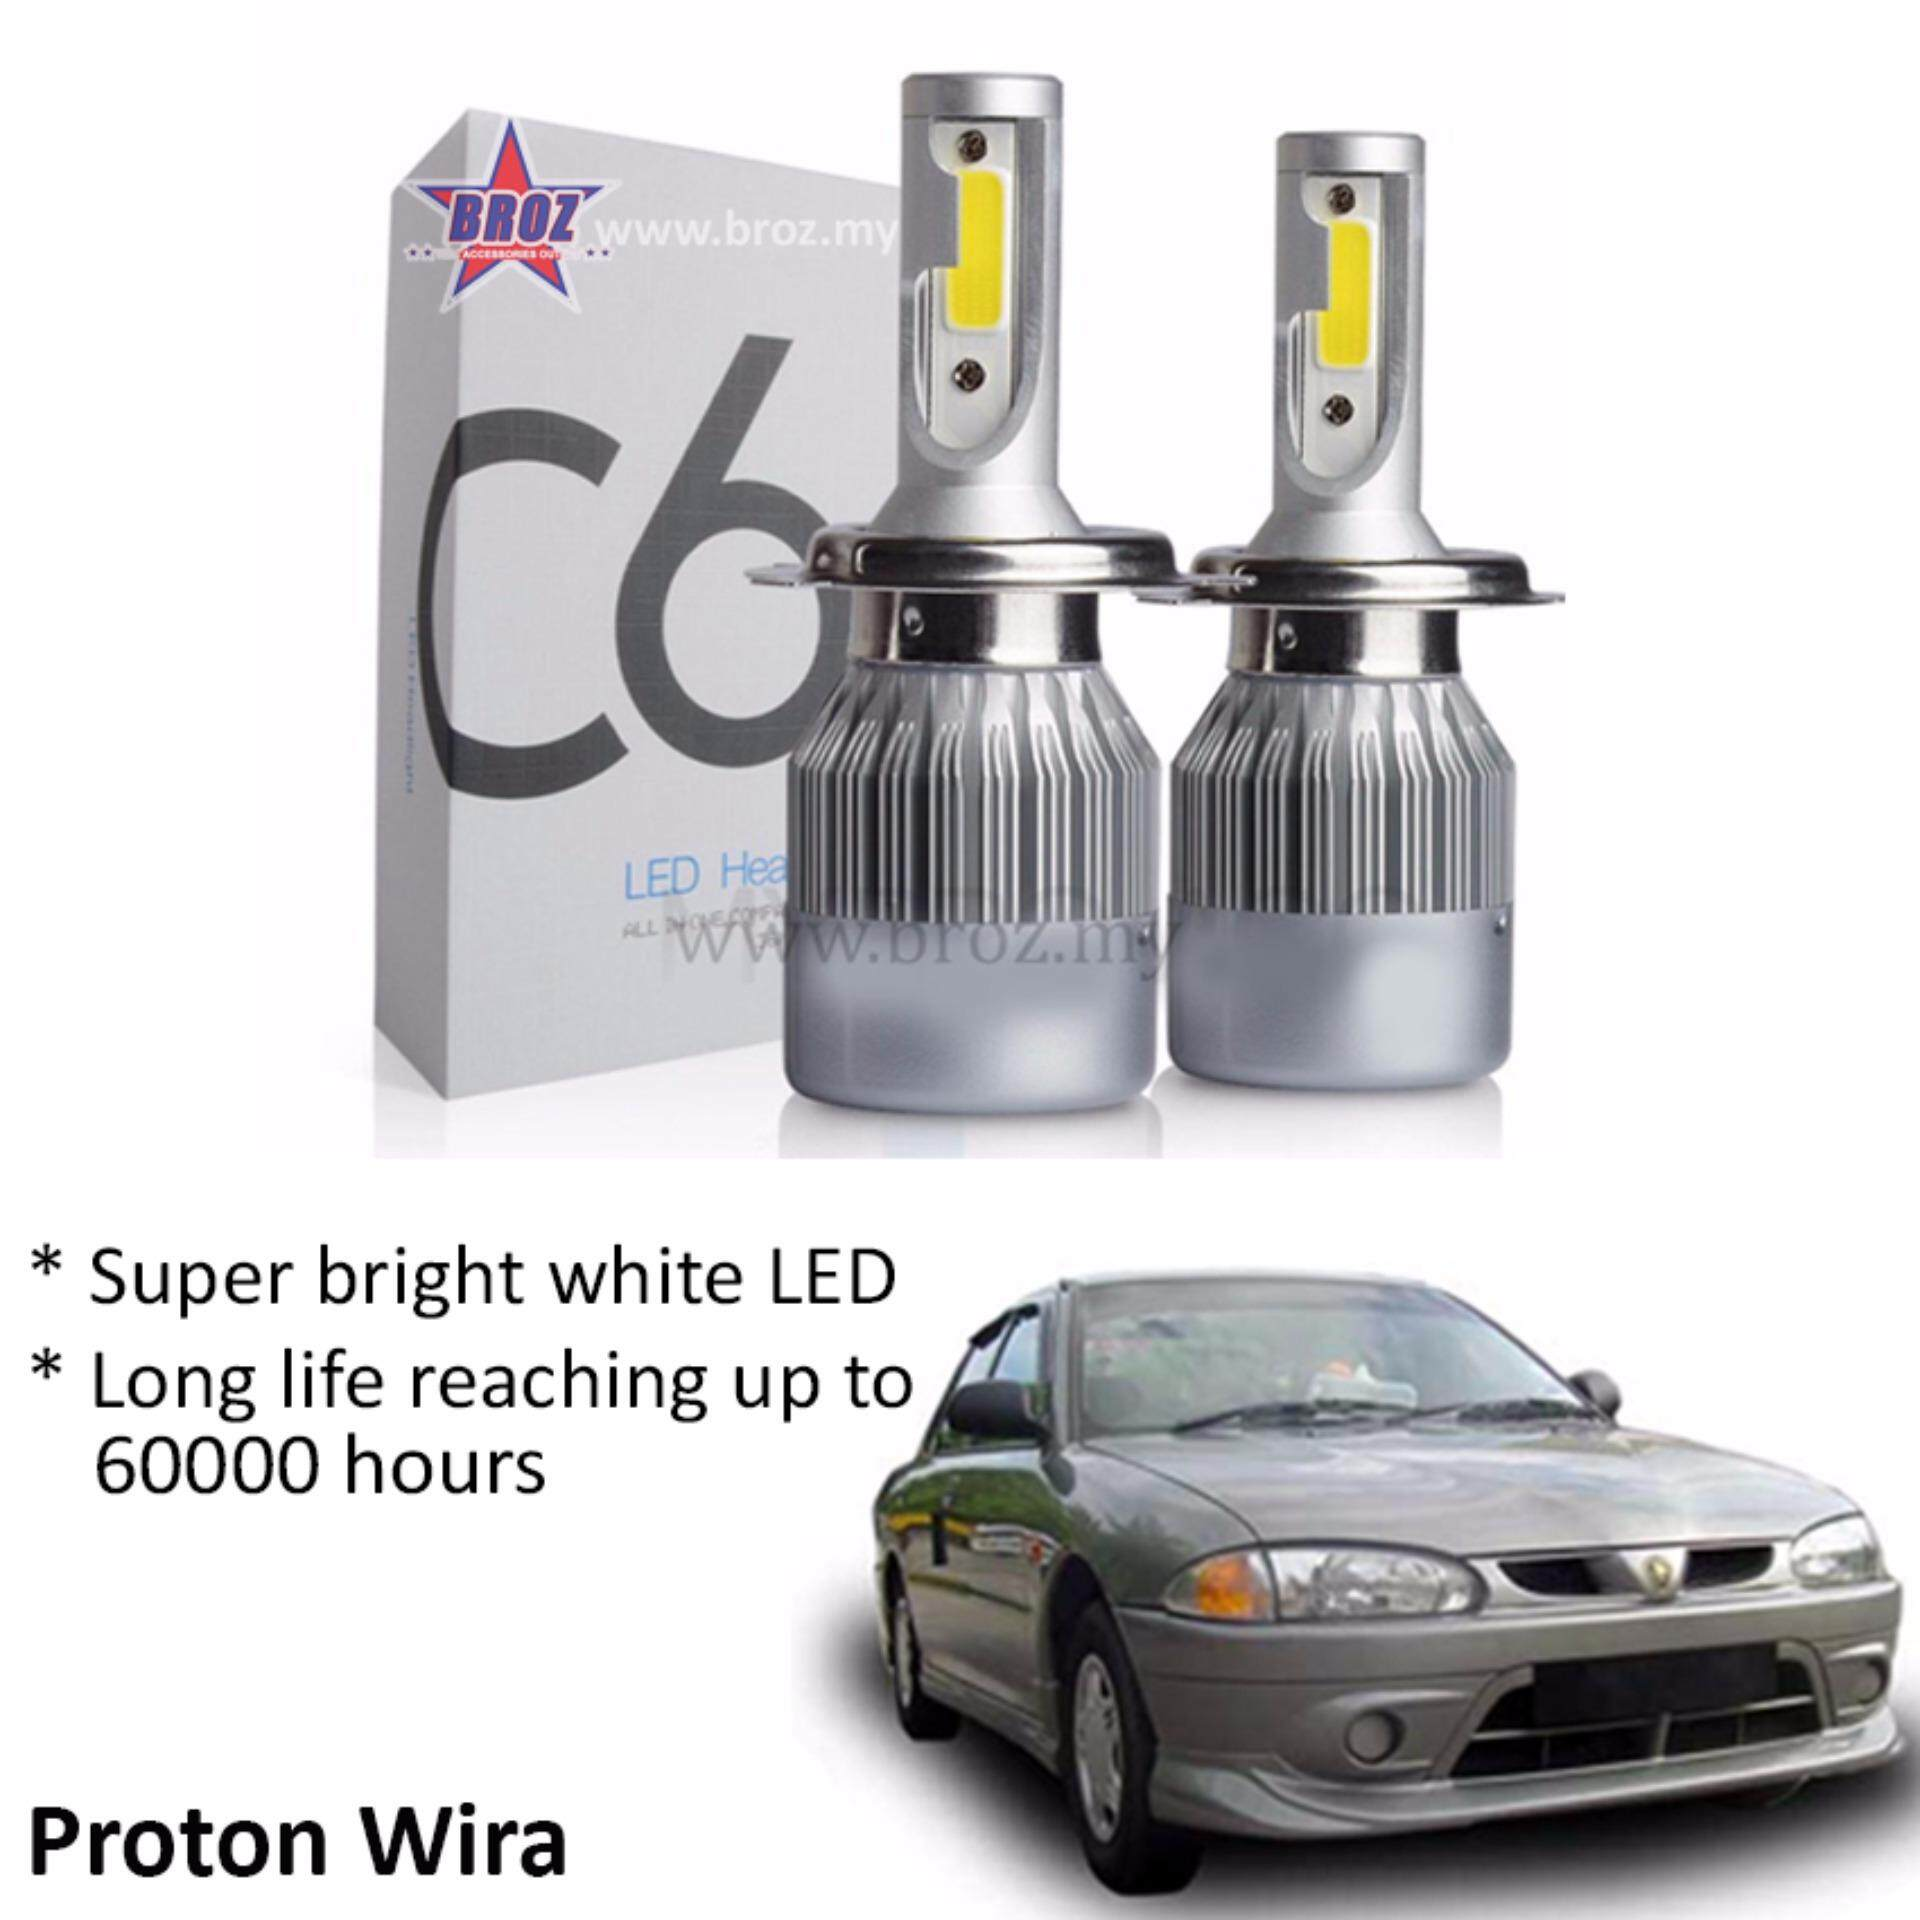 Sell Dp Wira Led Cheapest Best Quality My Store Wiring Lampu Tl Myr 49